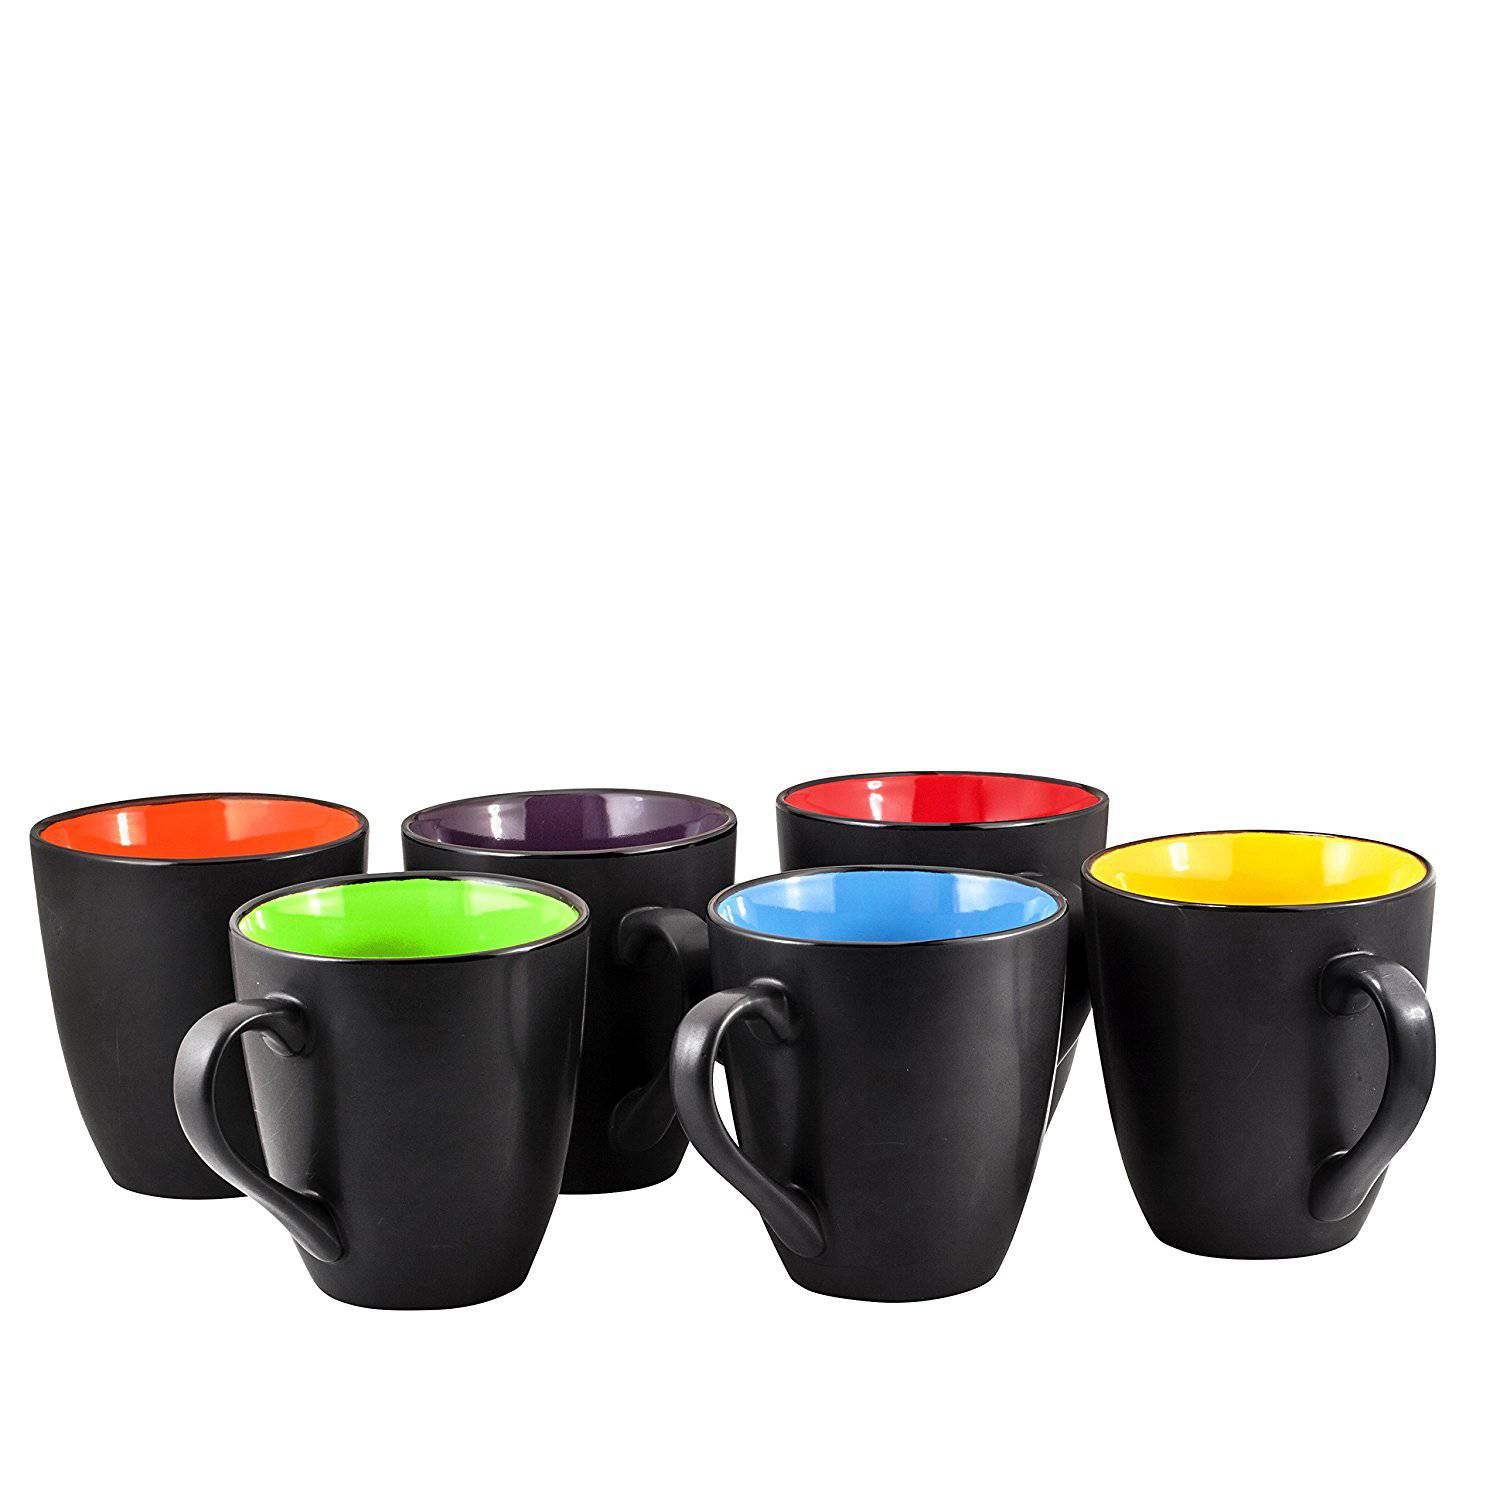 Large Coffee Mug Sets Coffee Mug Set Set Of 6 Large Sized 16 Ounce Best Price Review